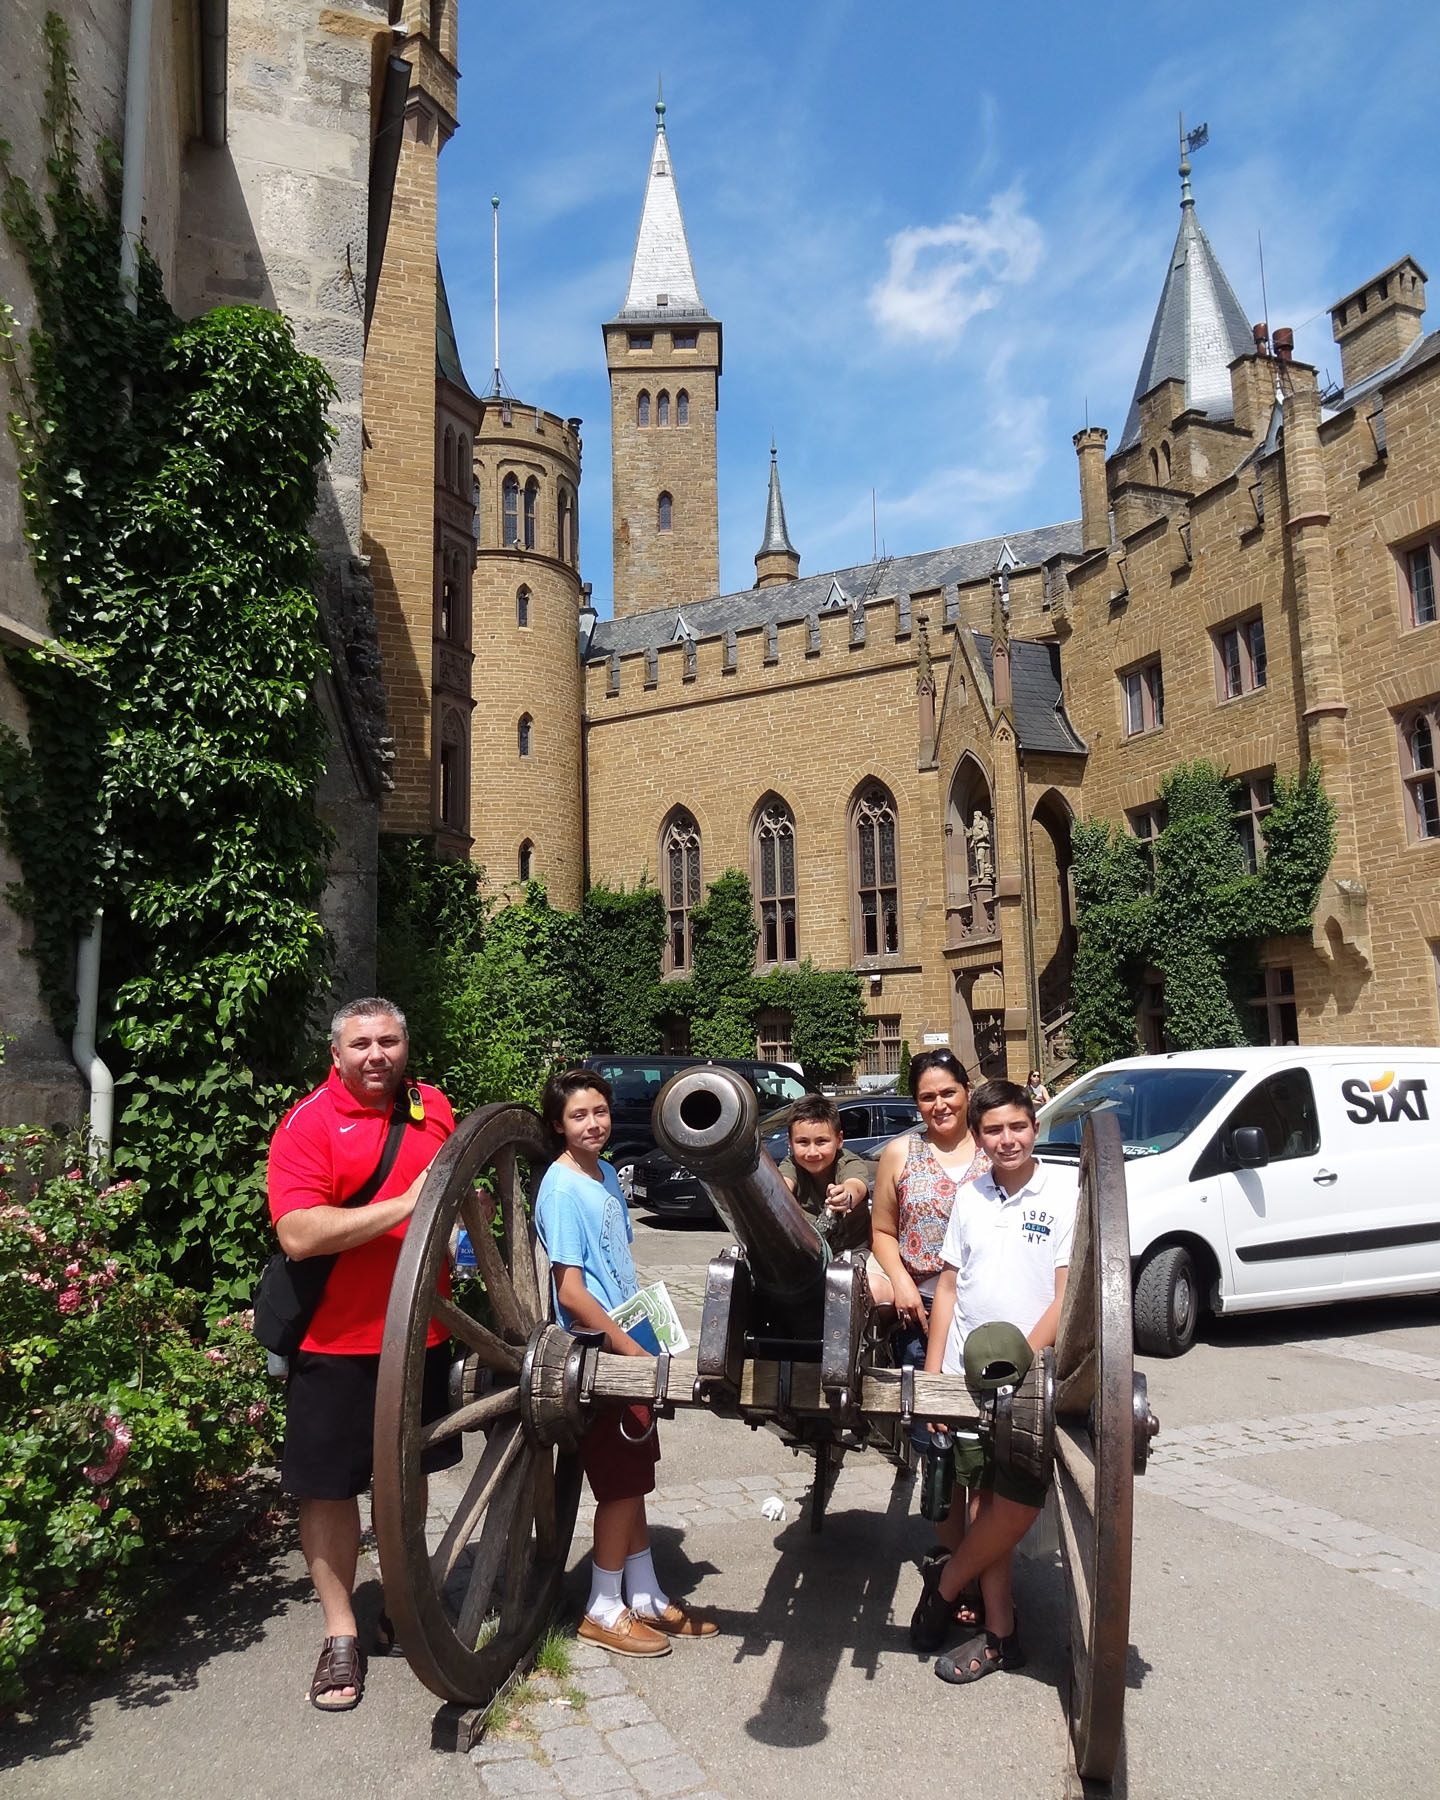 Hohenzollern Castle, Germany 2015